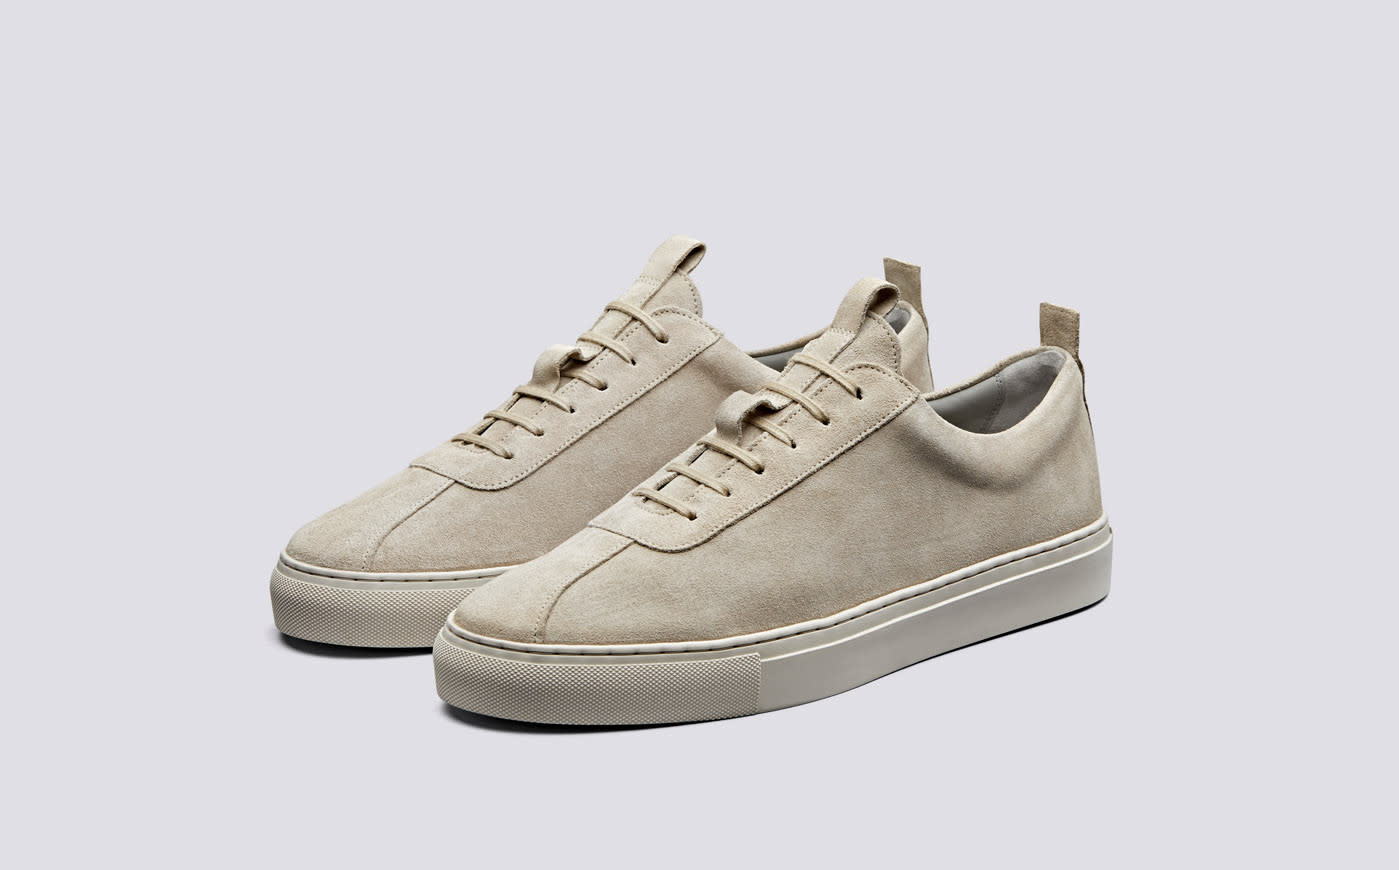 Sneaker 1 Stone Suede Oxfords Leather-1